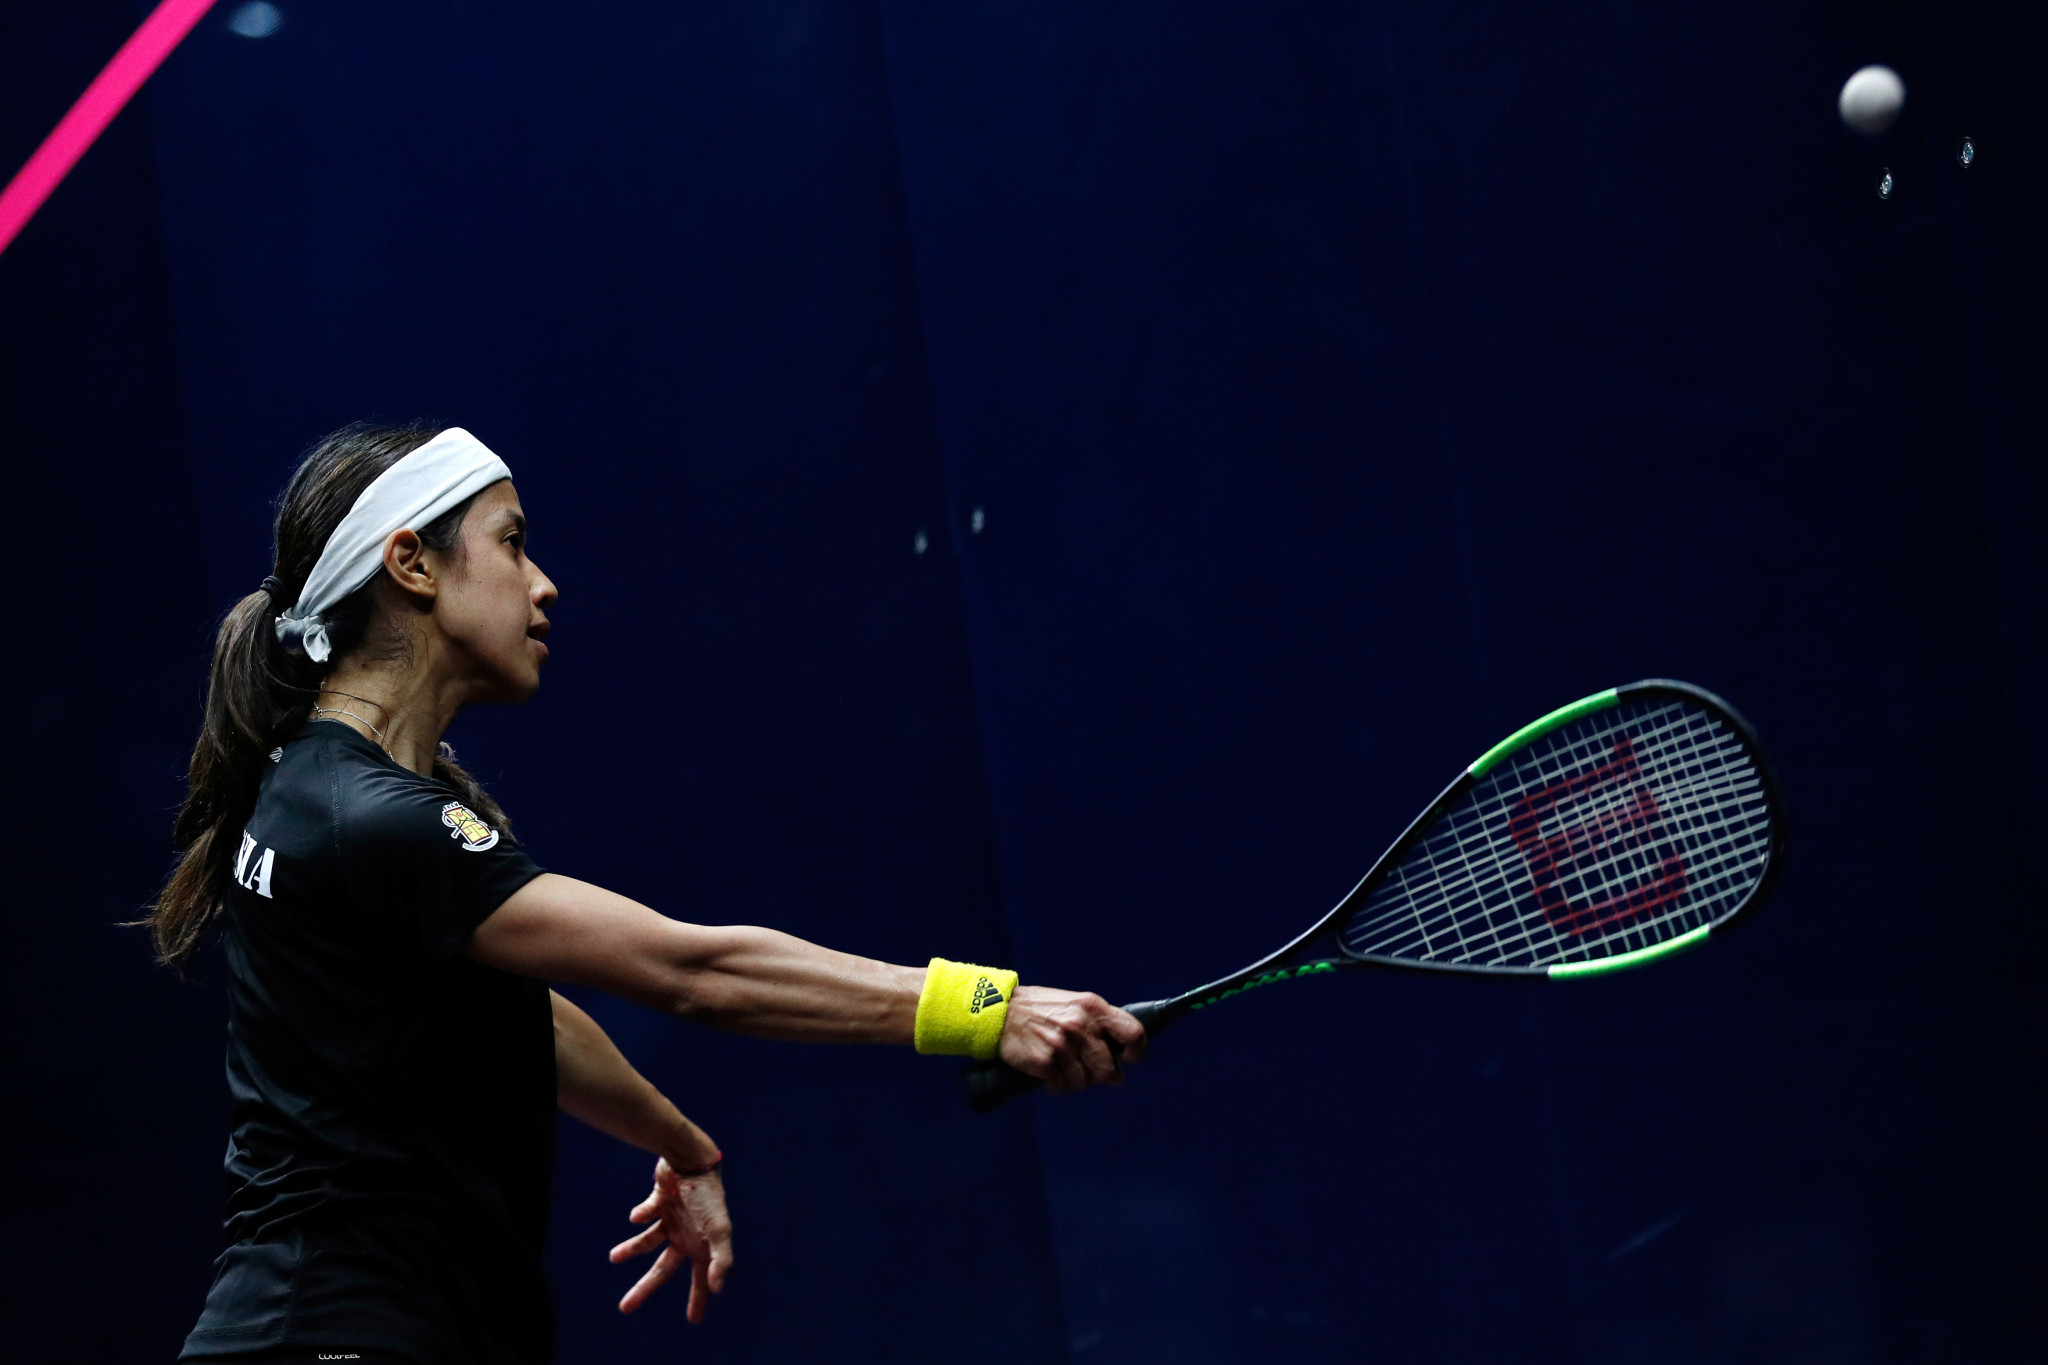 Nicol David helped Malaysia achieve their best finish in 2014 when they finished runners-up to hosts England ©Getty Images